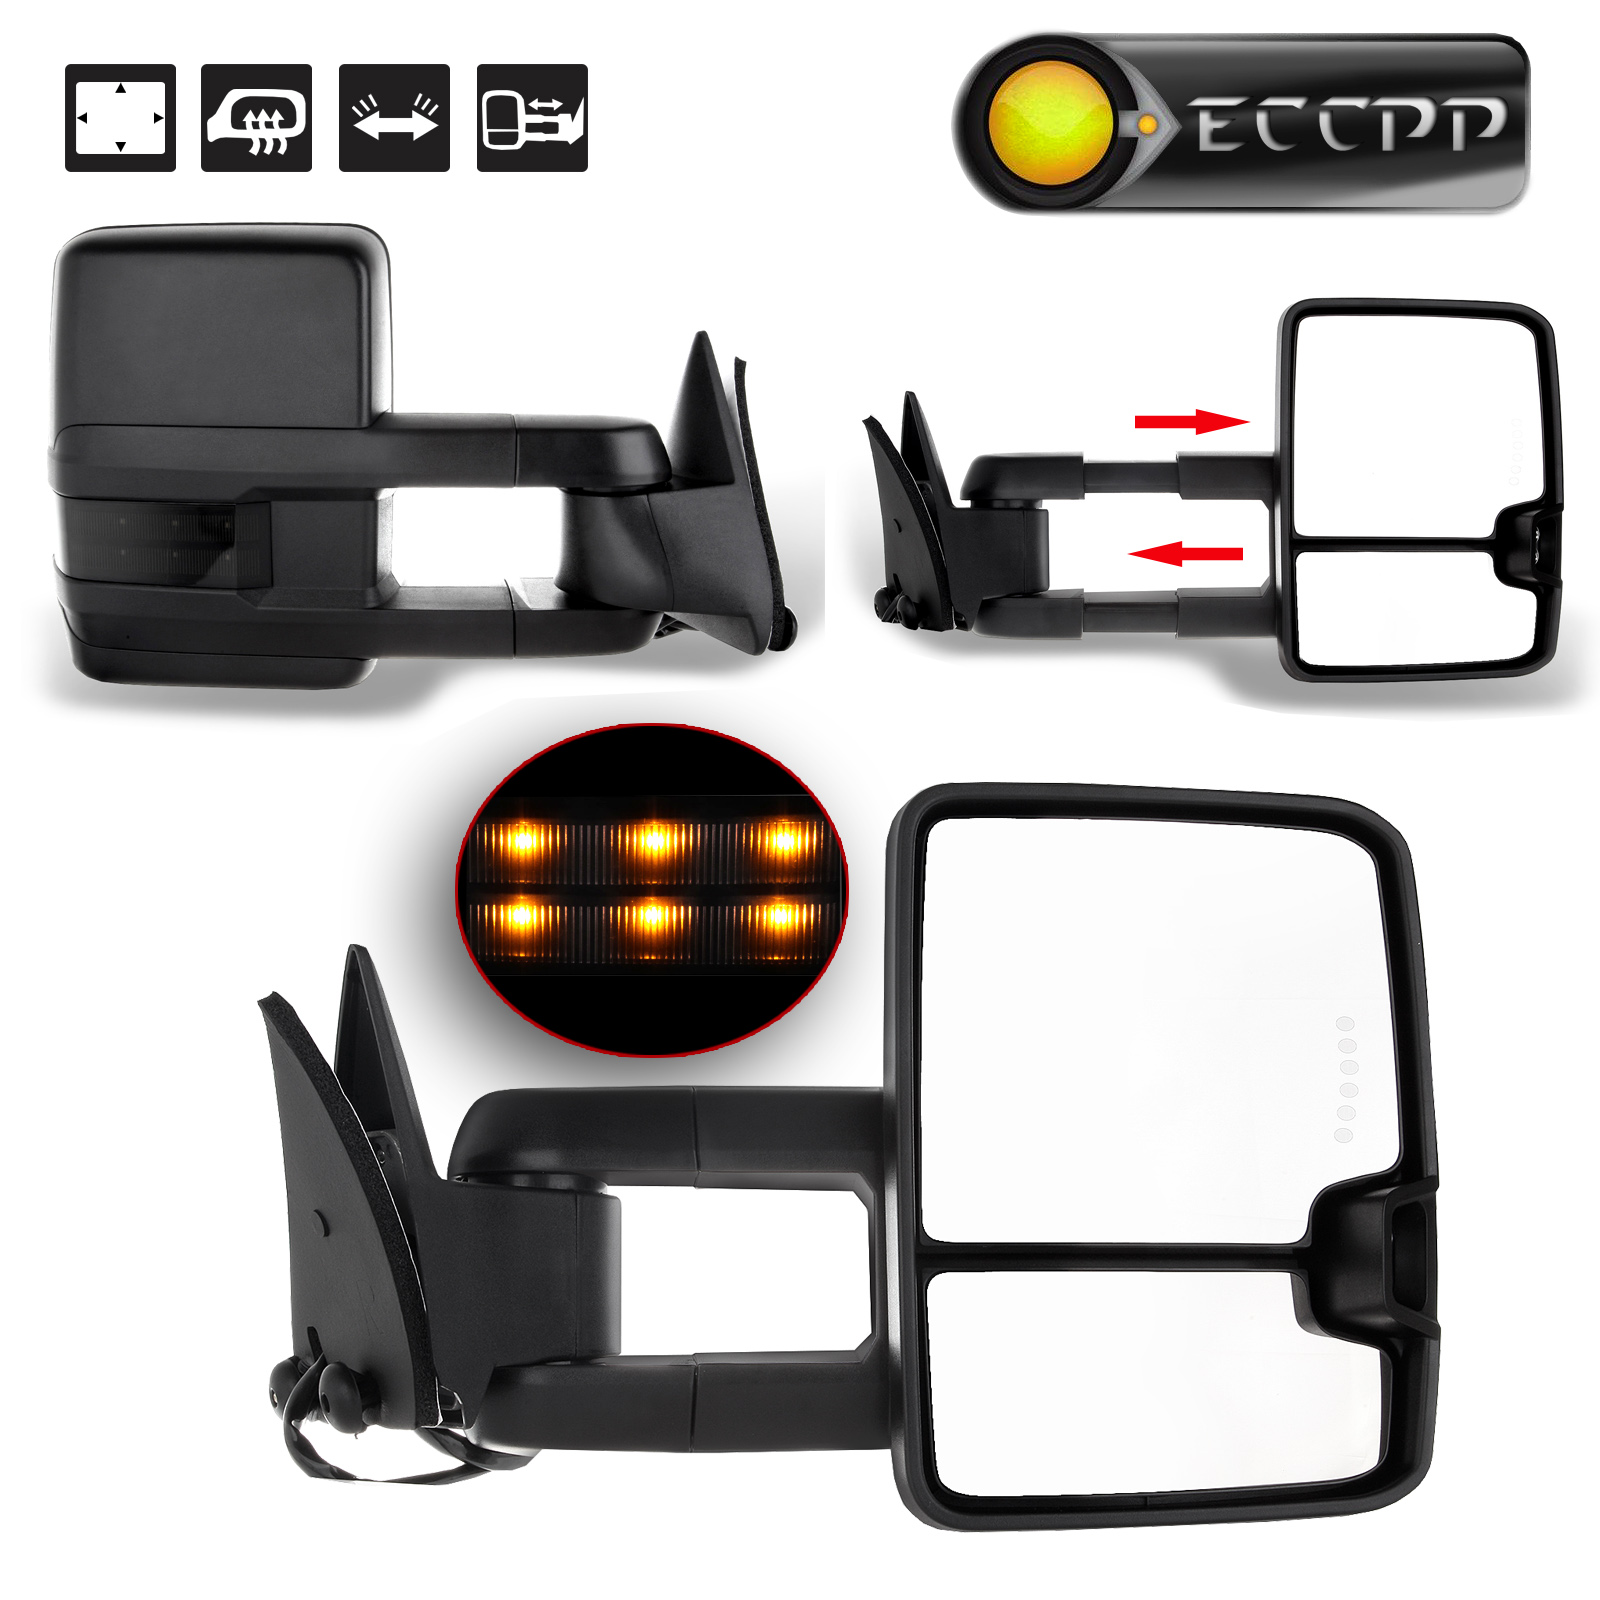 Eccpp power towing car mirror heating for 1988 1998 chevy gmc c k 1500 2500 3500 smoke led signals left right view mirrors